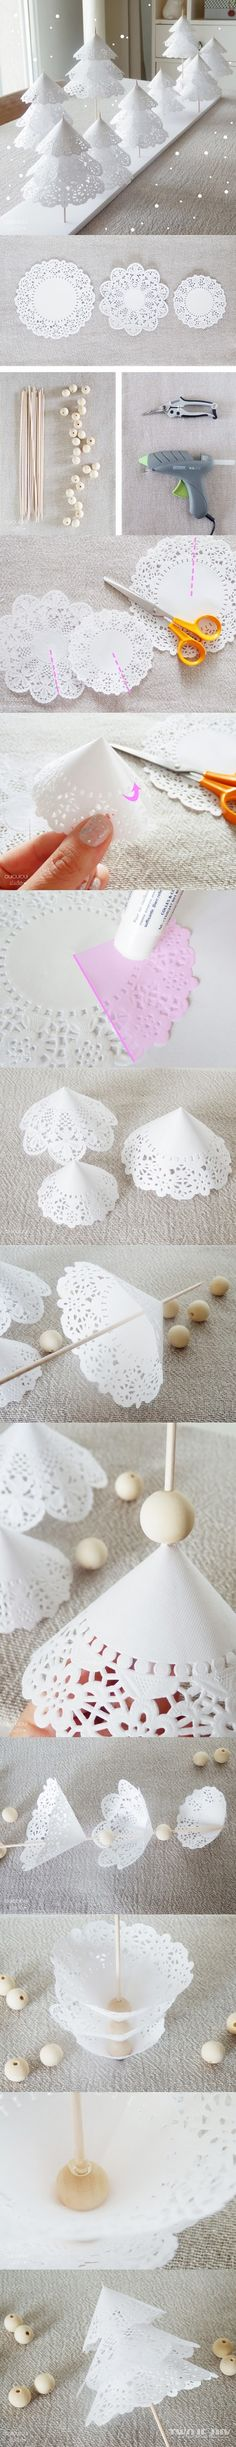 These are too sweet, and so easy to make. Doily Christmas trees